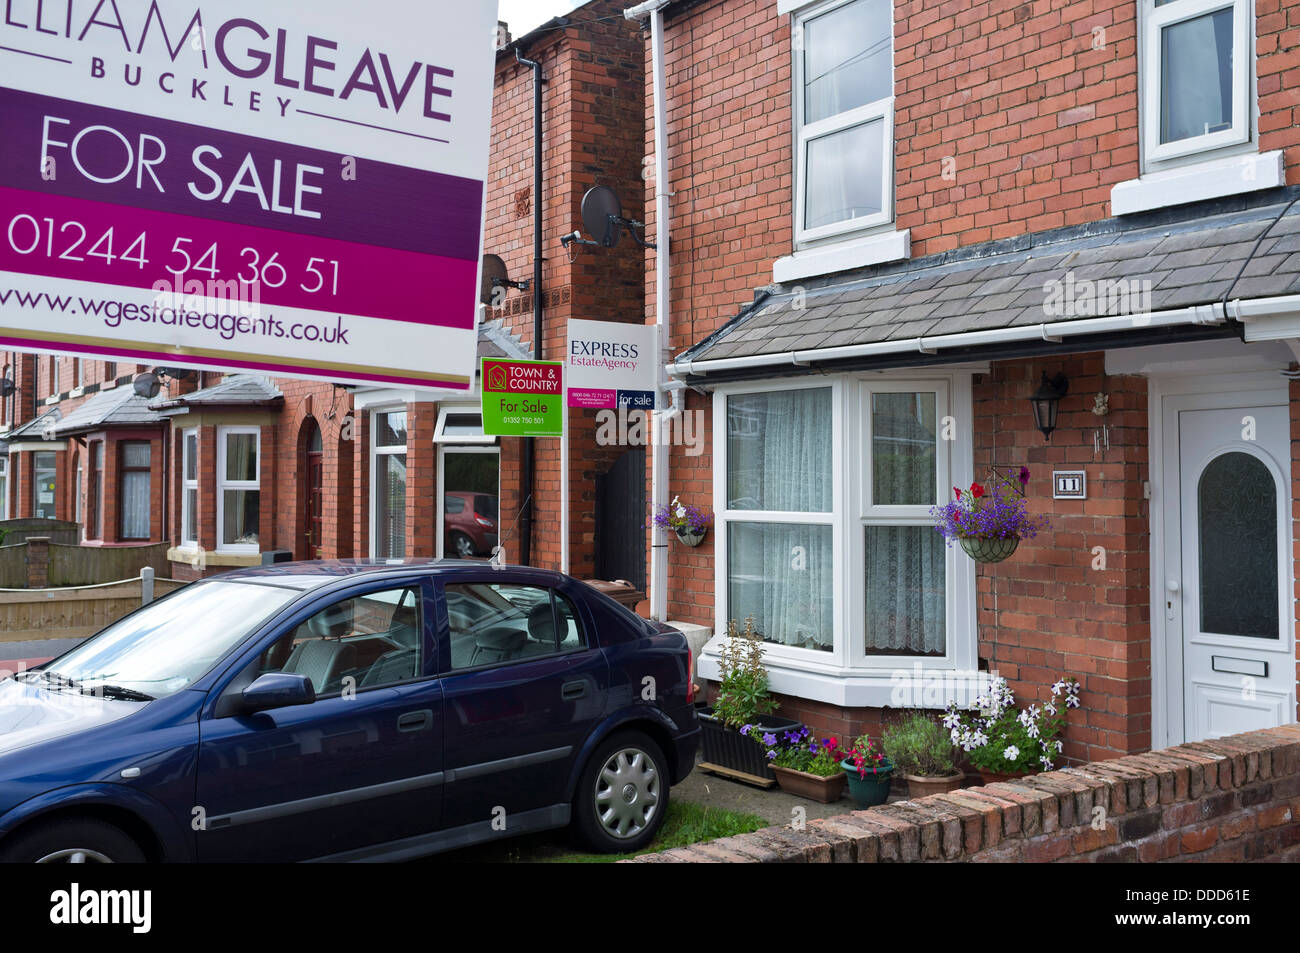 Two Red Brick Row Houses For Sale In Buckley, Flintshire, North Wales, UK